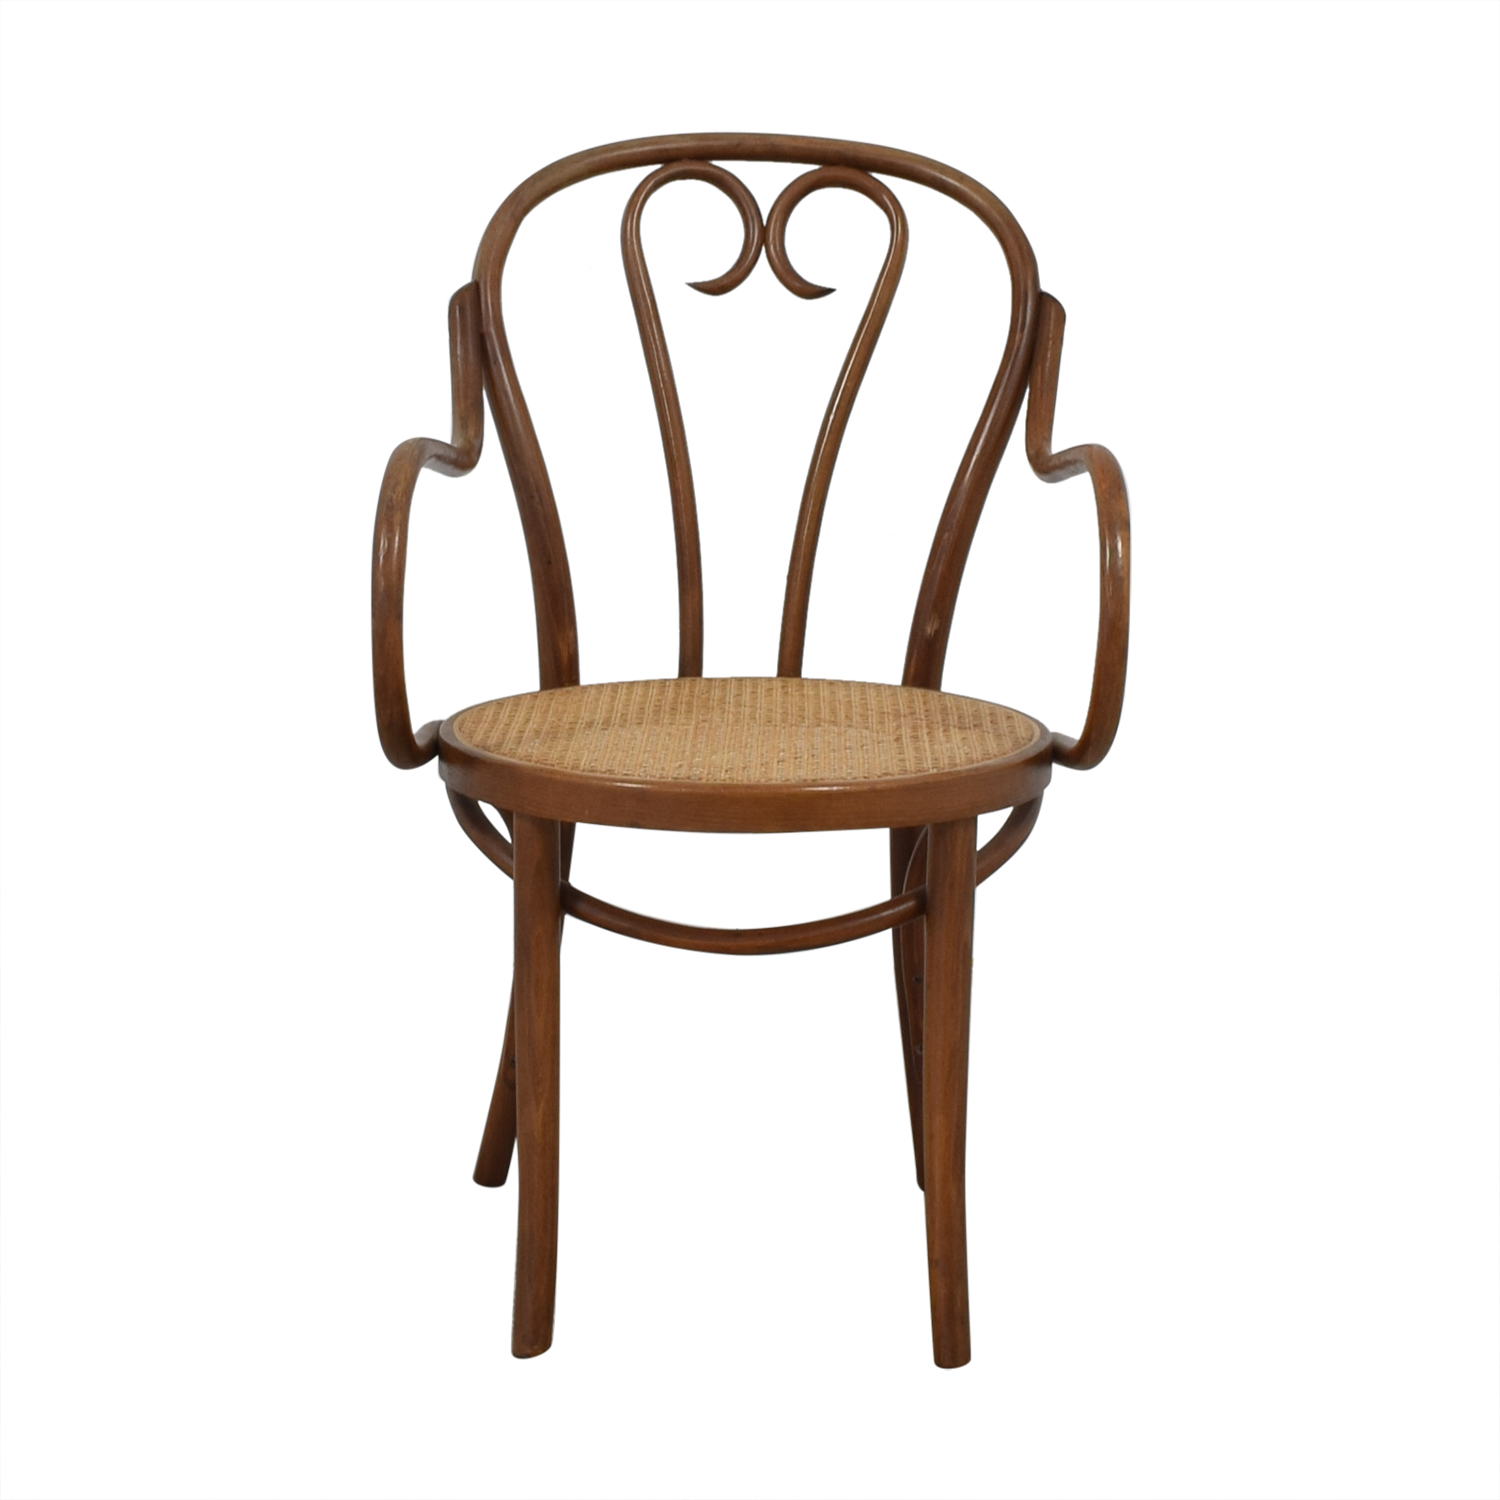 Thonet Thonet Bentwood Bistro Chair dimensions